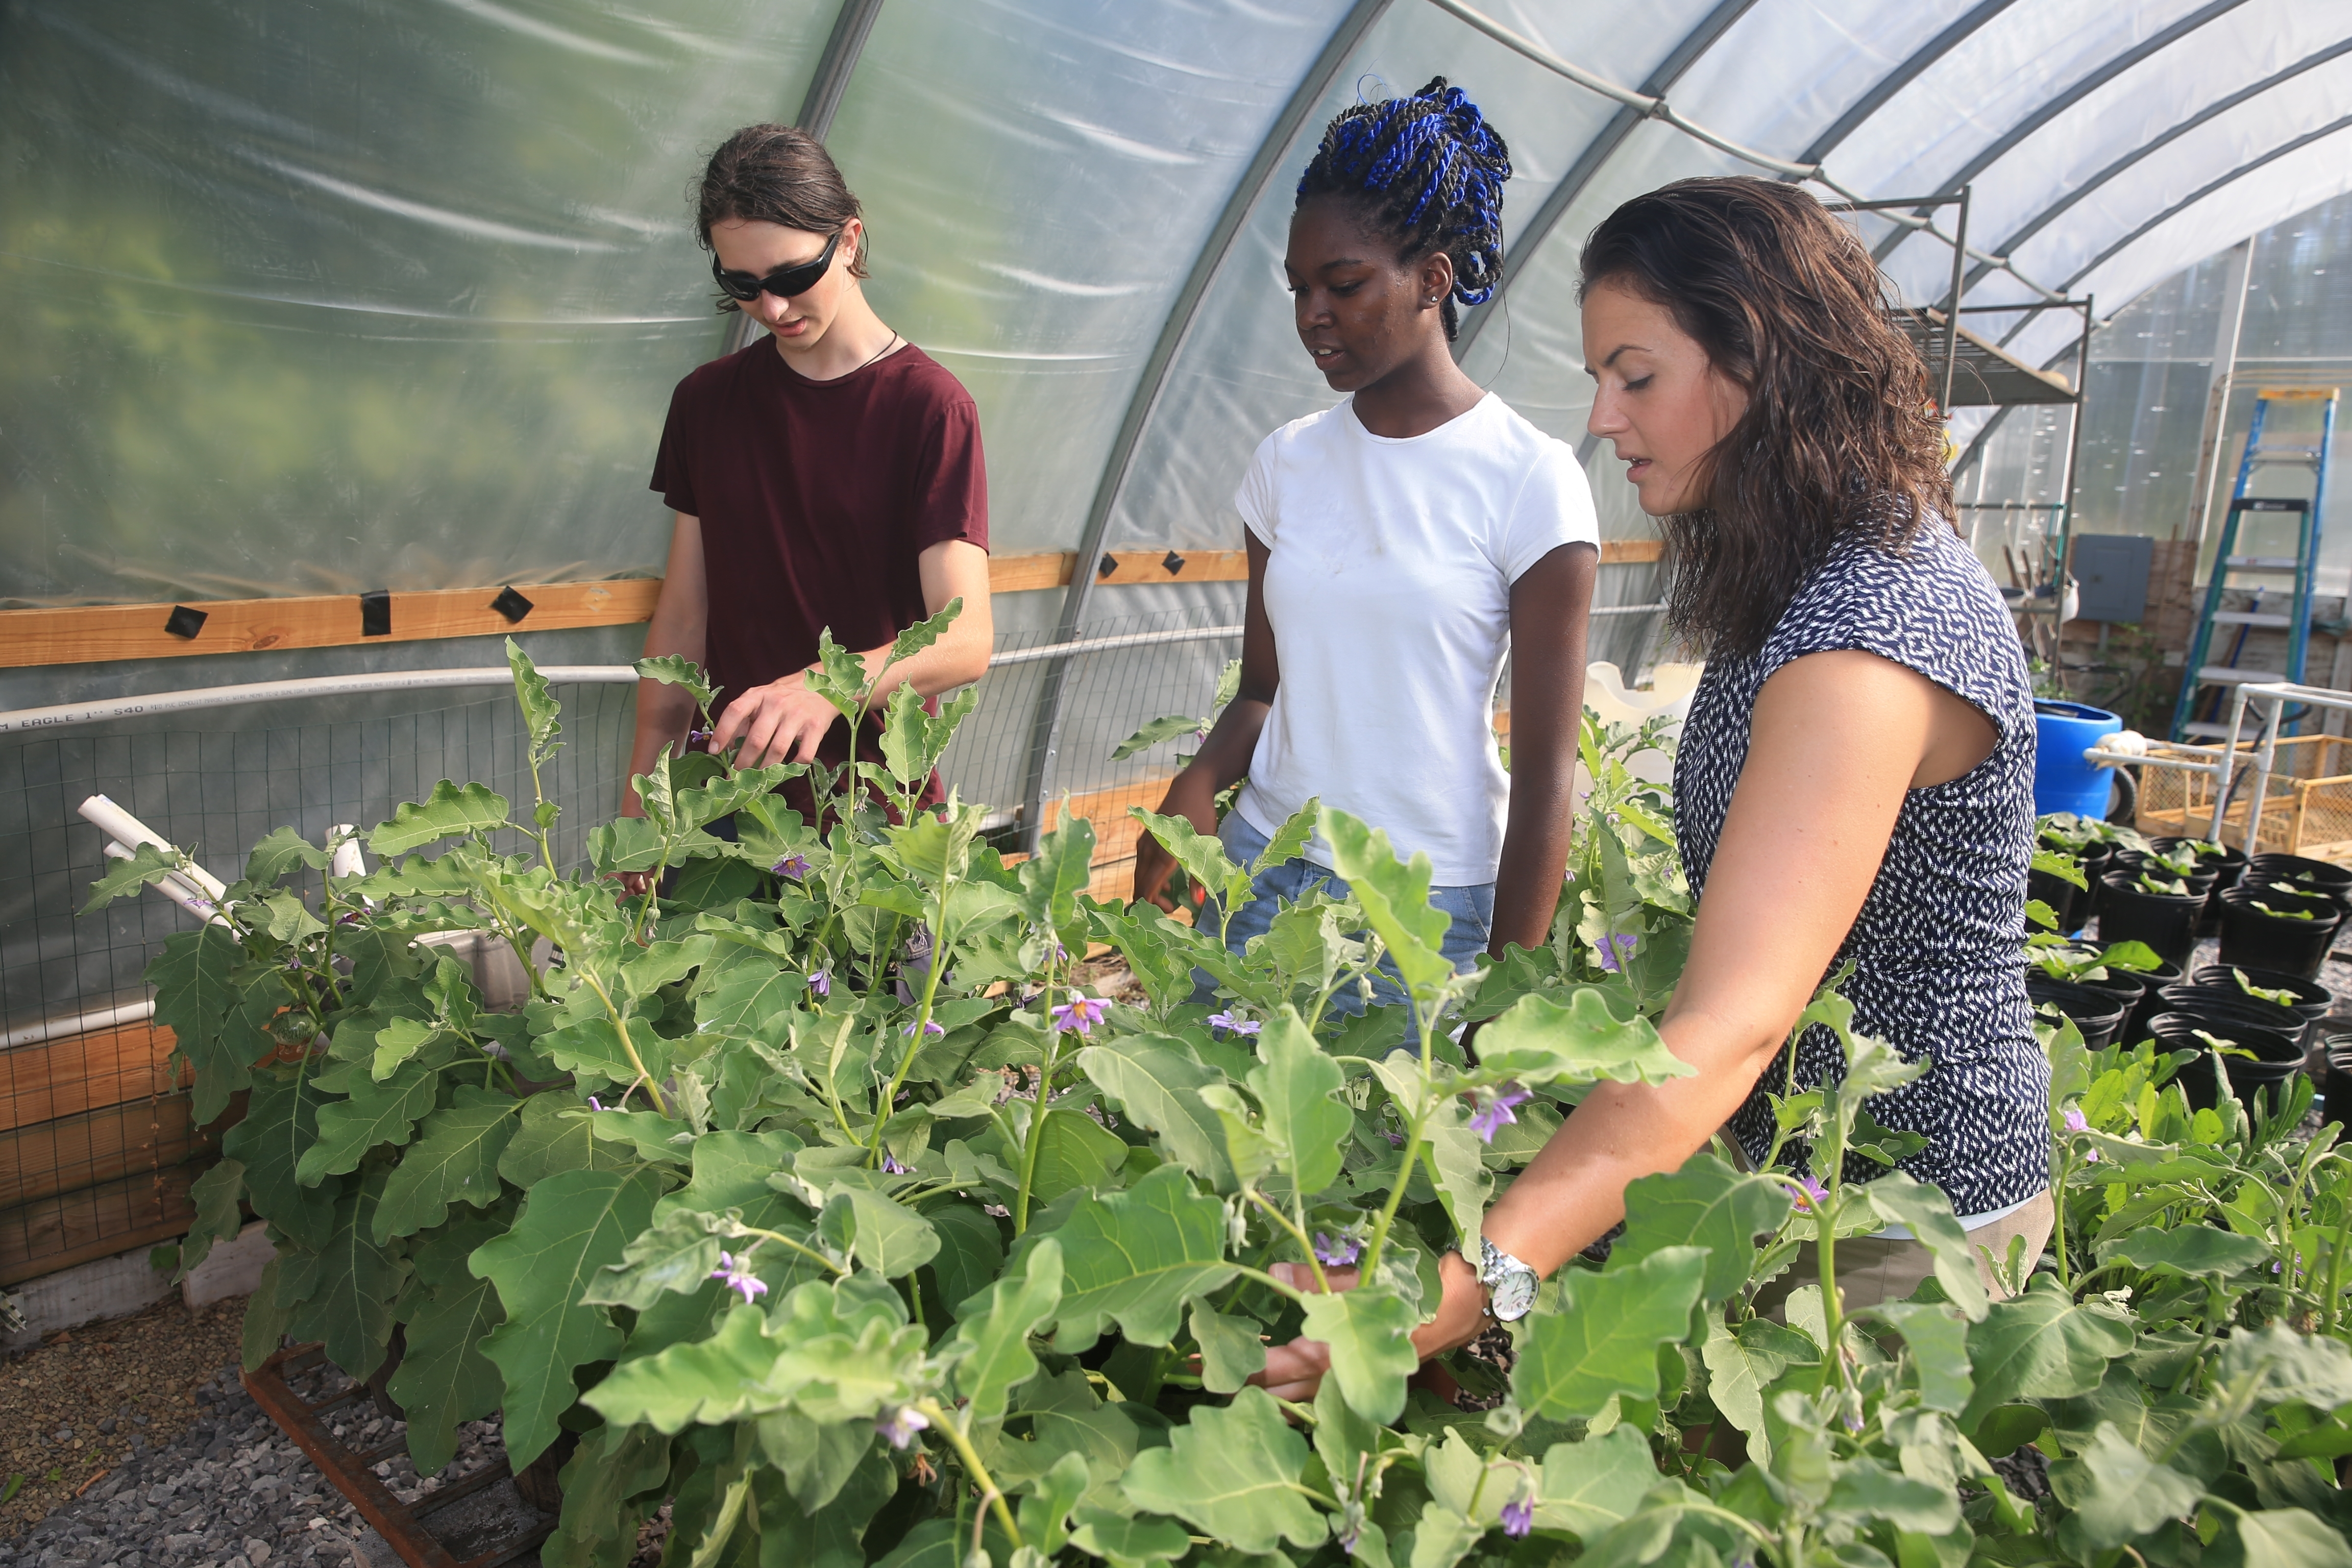 Katie Lyons O'Connor, right, of M&T Community Investment, inspects eggplants Thursday with Massachusetts Avenue Project students  Alexis Smith, center, and Javert Boudreau.